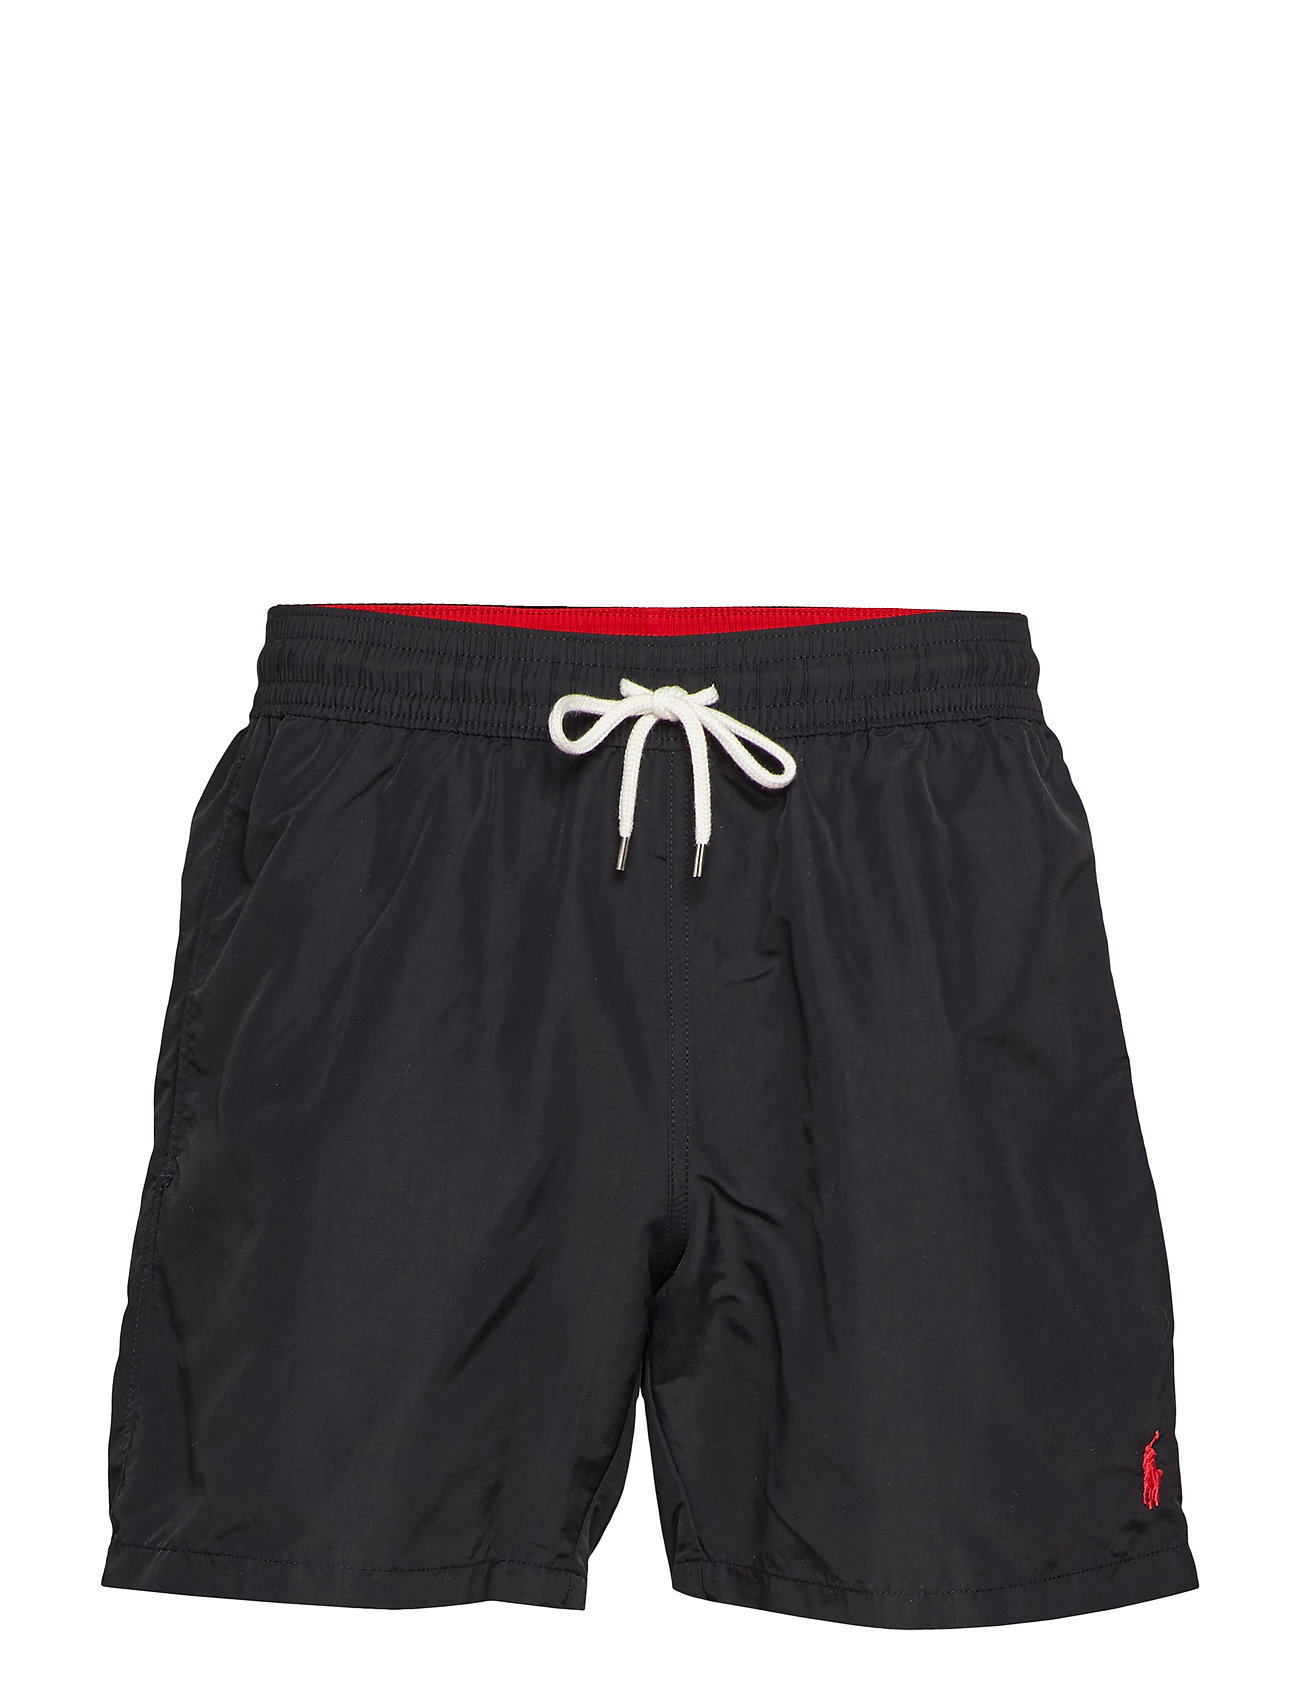 Polo Ralph Lauren TRAVELER SHORT - POLO BLACK